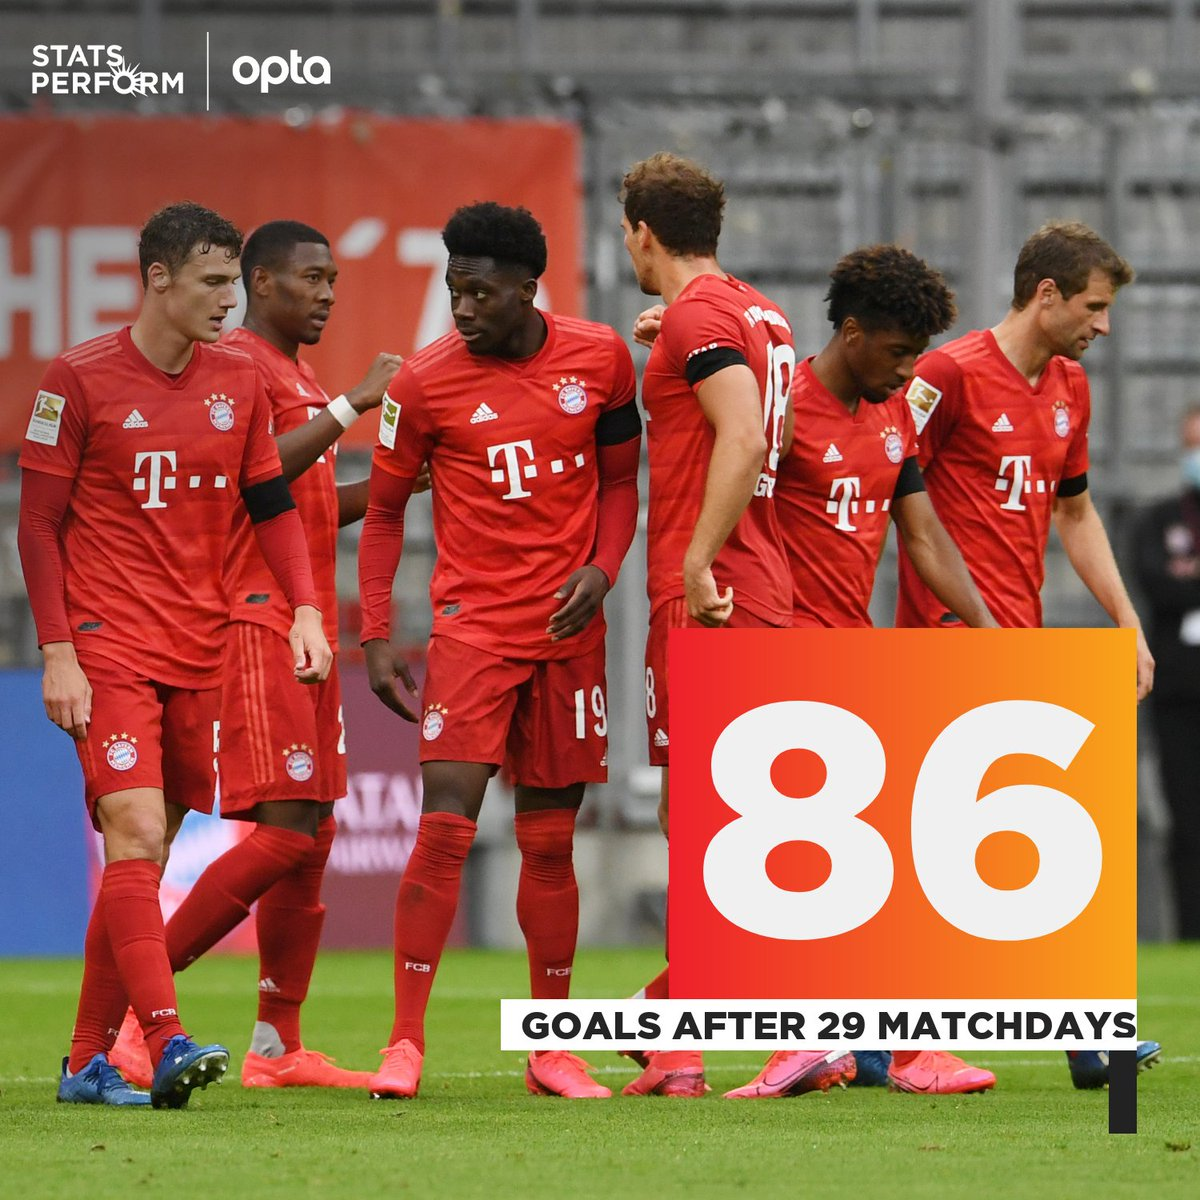 86 - @FCBayernEN are the first team to score 86 goals on the first 29 matchdays of a #Bundesliga campaign. Exhilaration. #FCBF95 https://t.co/a0Jntt7HWN